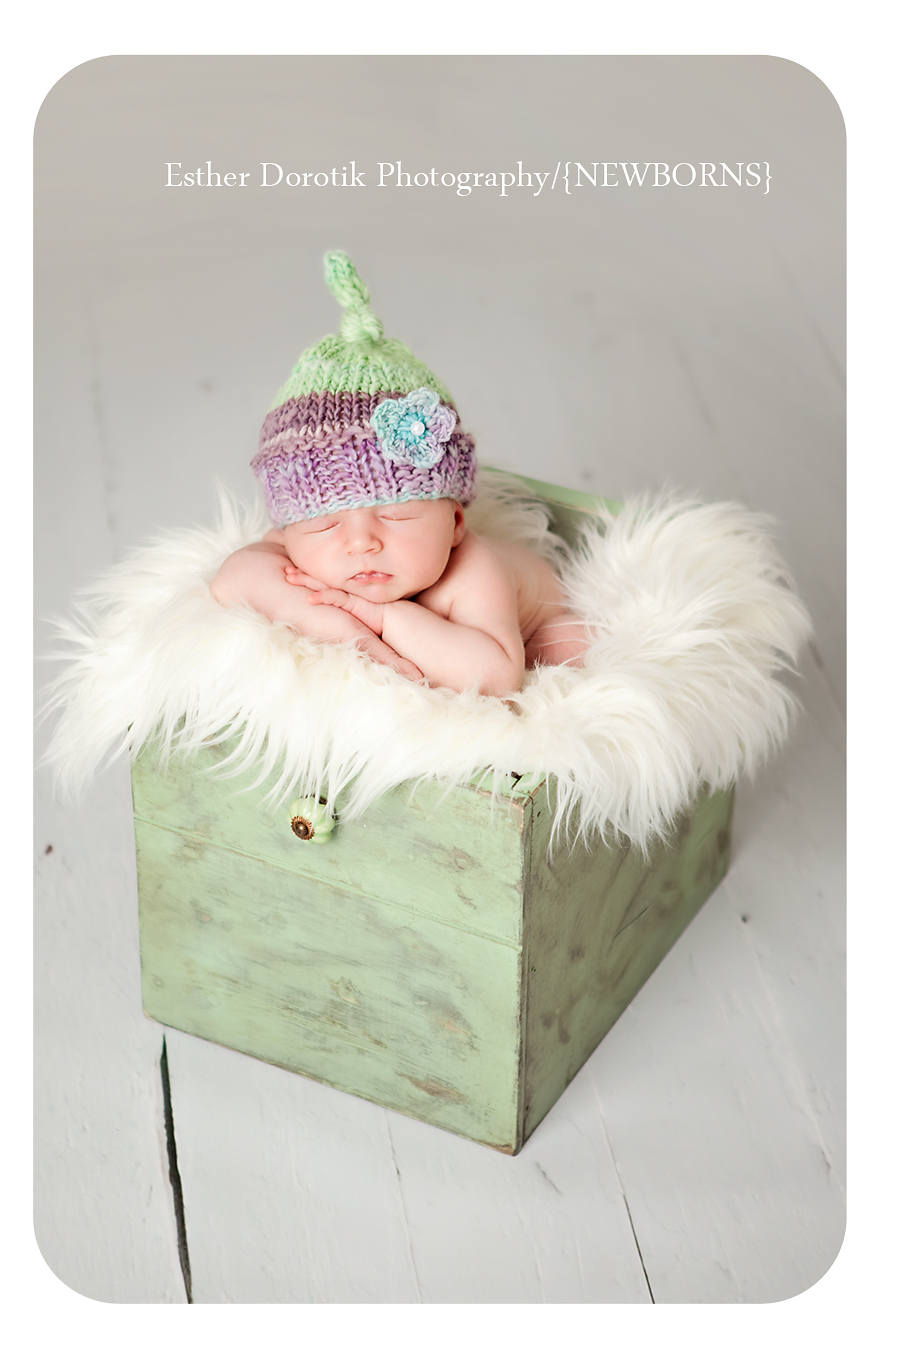 photograph-of-newborn-baby-with-hat-in-a-box-and-fur